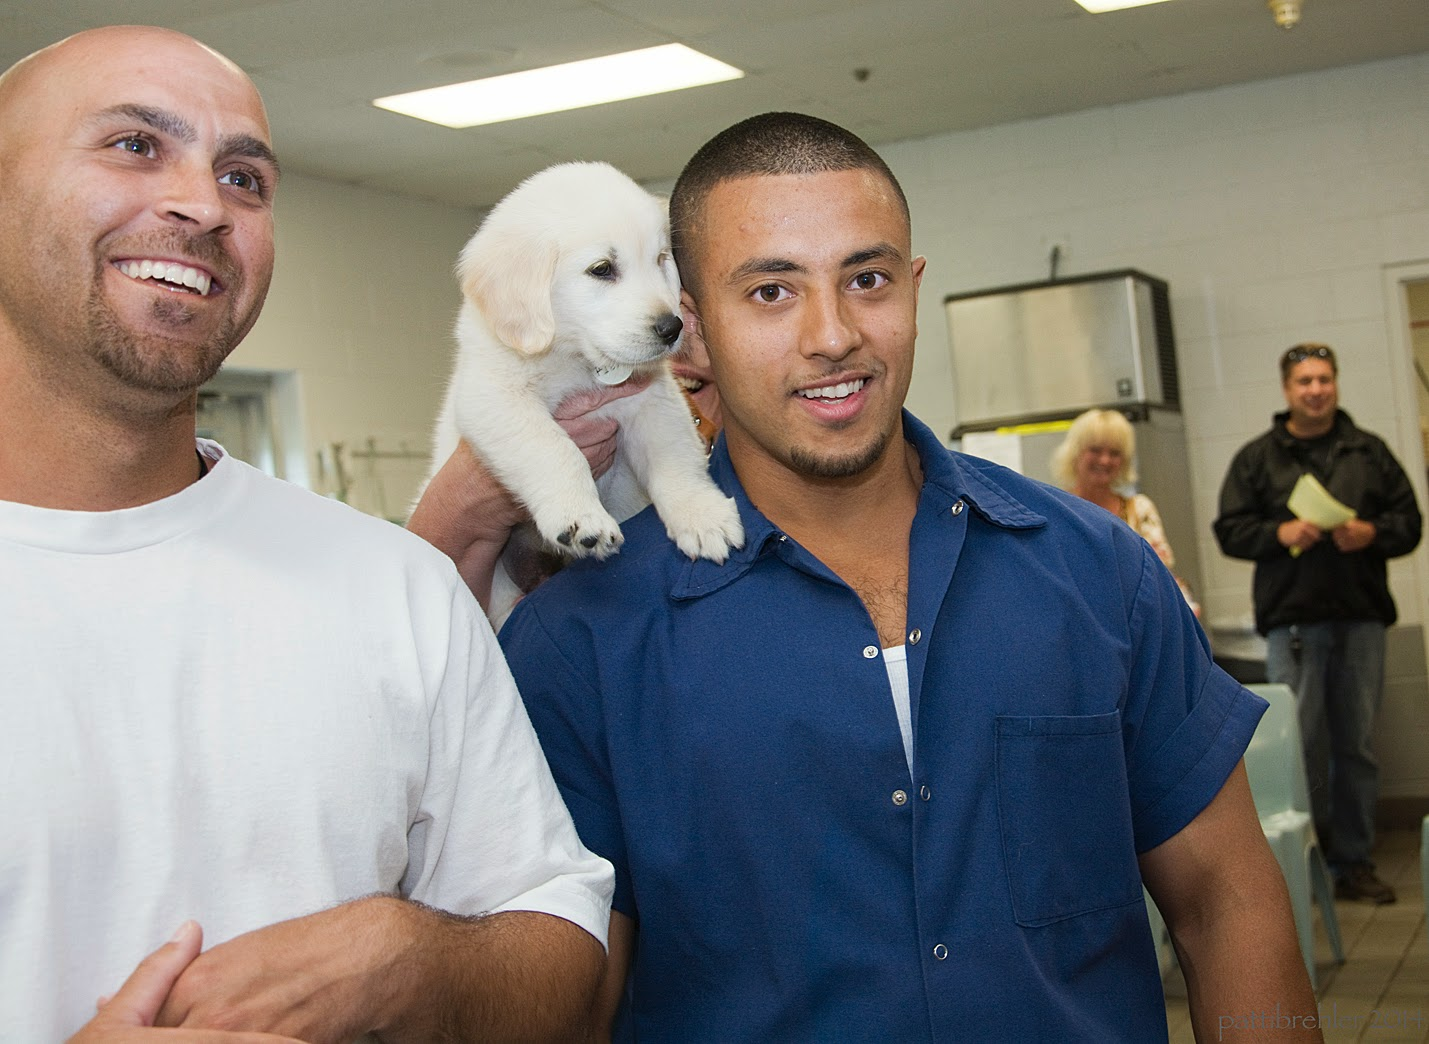 A bald man wearing a white t-shirt is standing on the left with a huge smile. Next to him is a man with a blue shirt on - the fuzzy puppy is being lifted over this man's right sholder. In the background is a woman and man standing and watching.